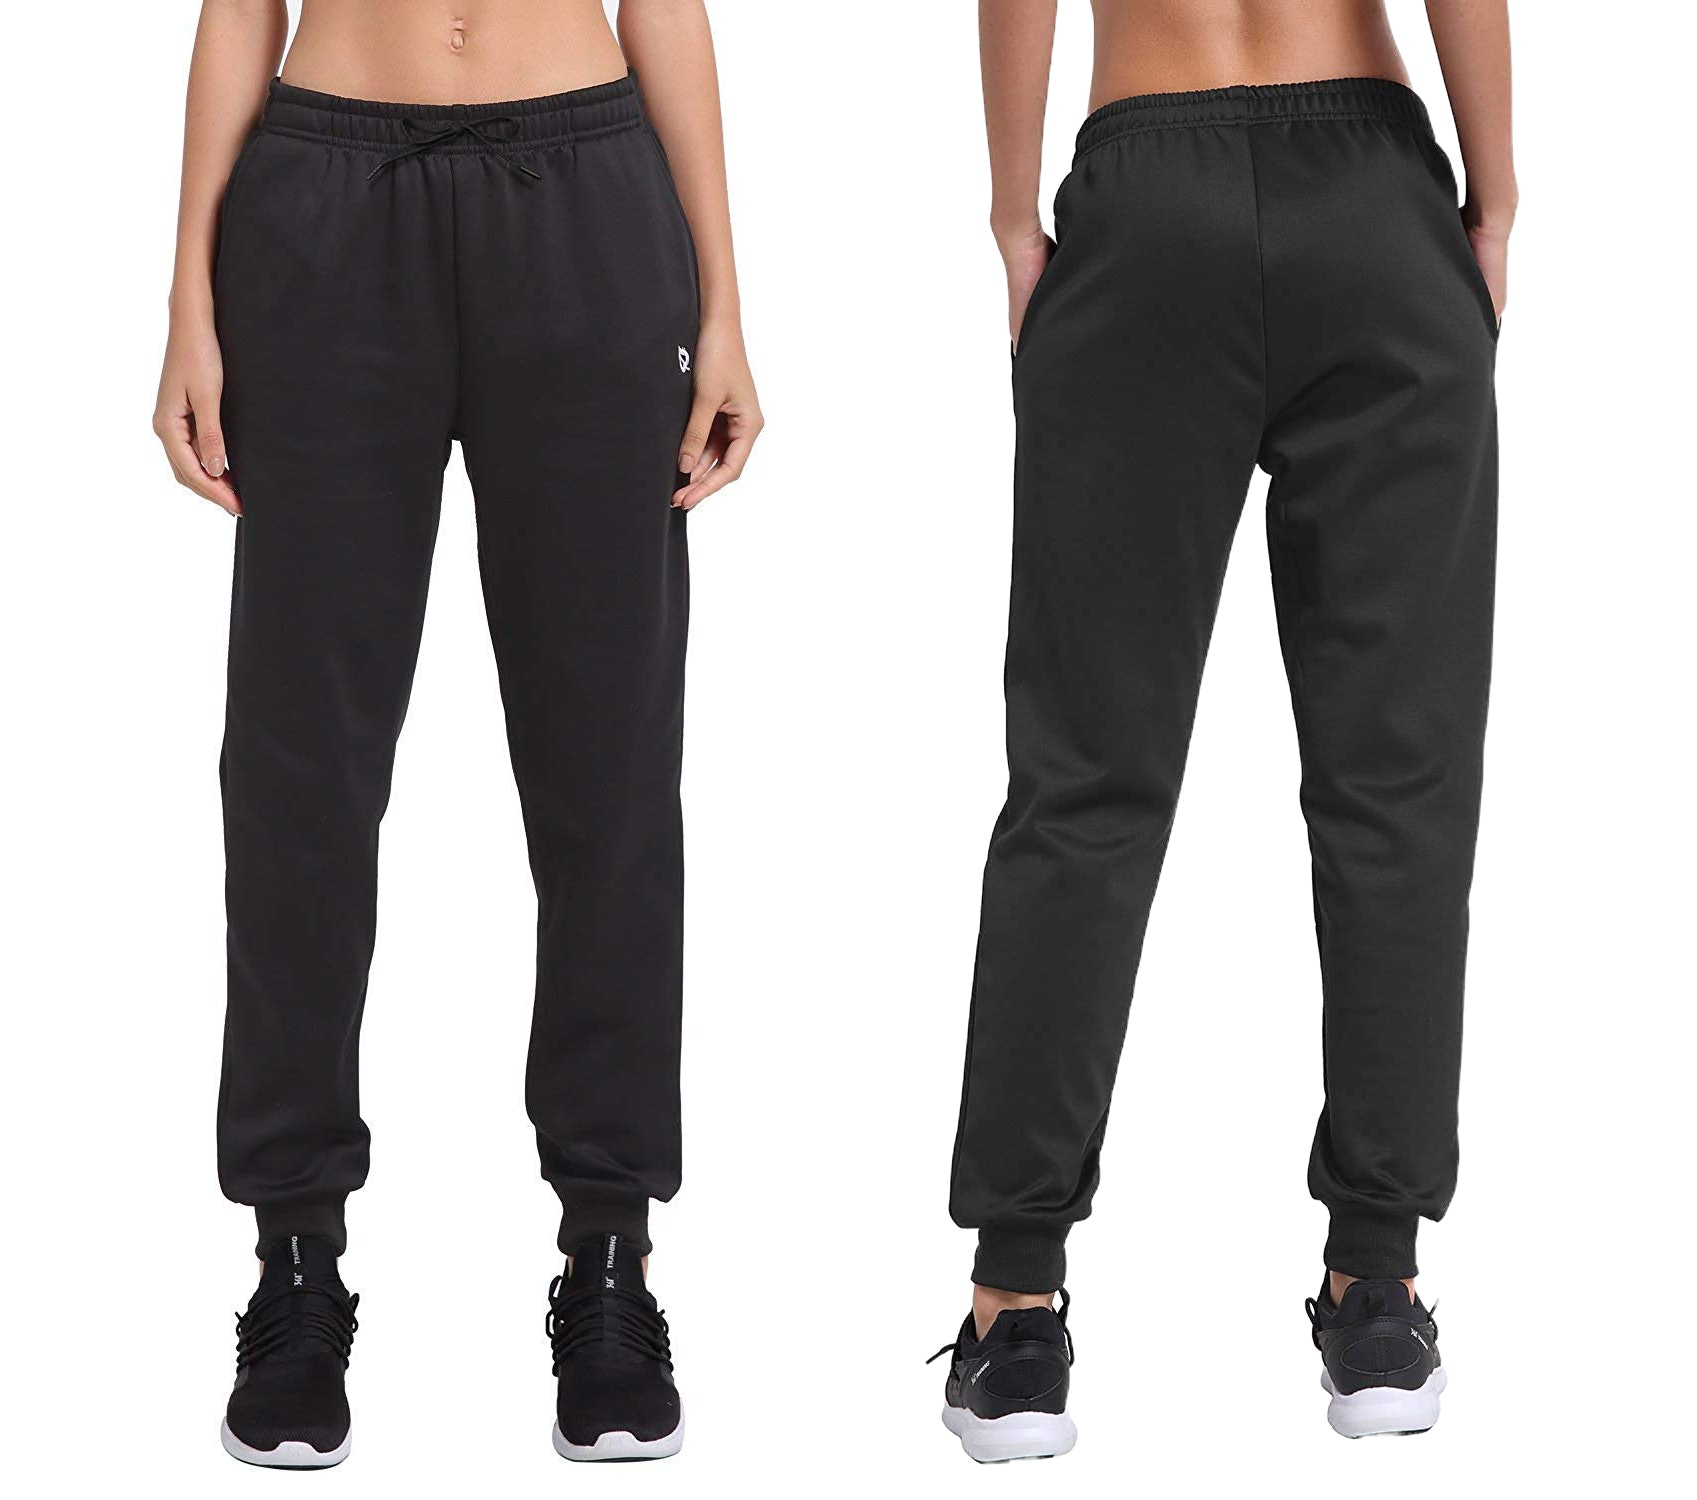 NEW WOMEN/'S LITE GRAY STRETCHY LOUNGE//ATHLETIC PANTS SOFT COMFY COZY SIZE SMALL